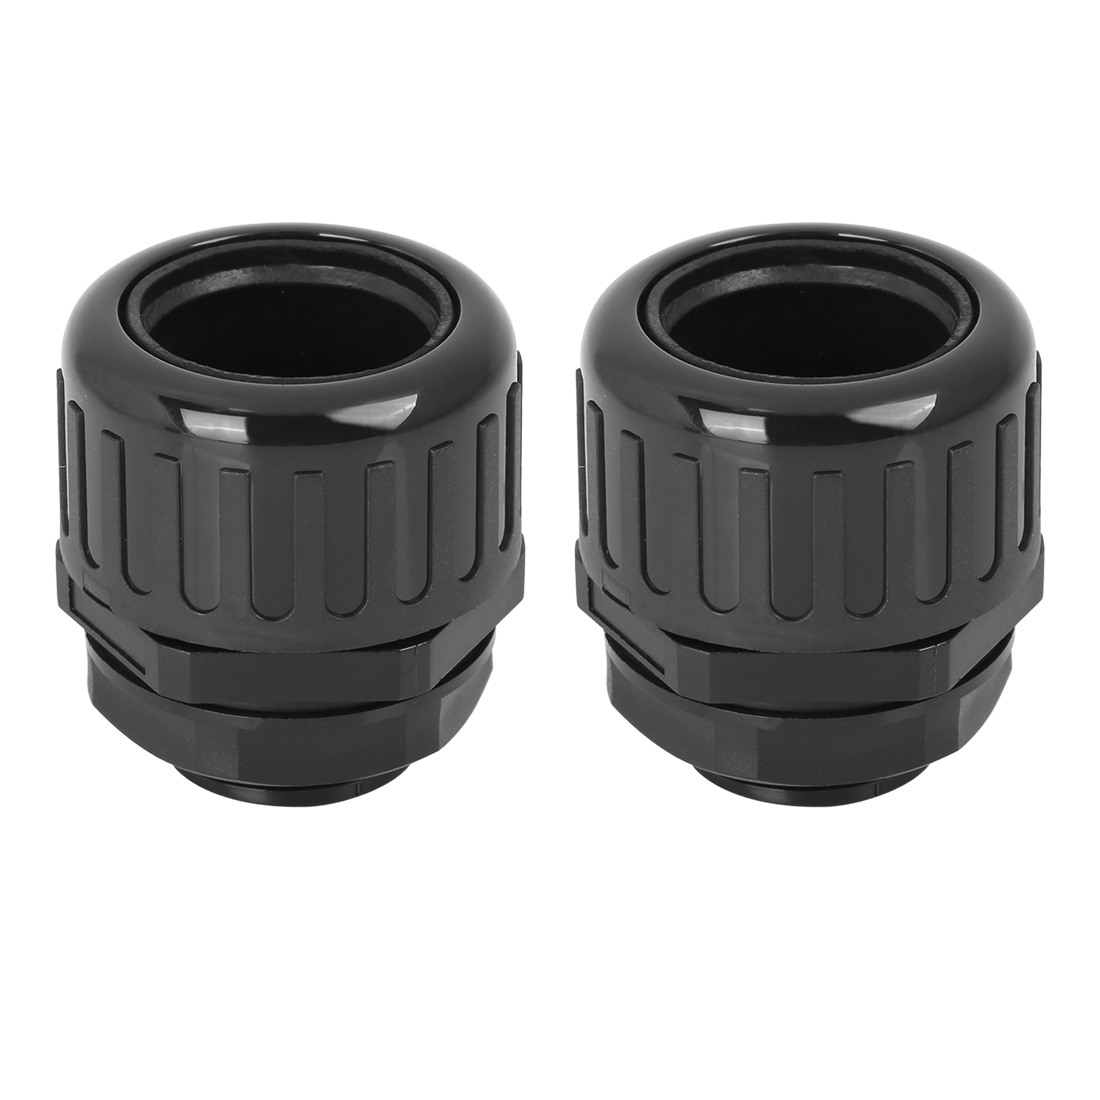 Cable Gland Nylon Plastic Connectors with Lock Nut and Gaskets M25x1.5 2pcs